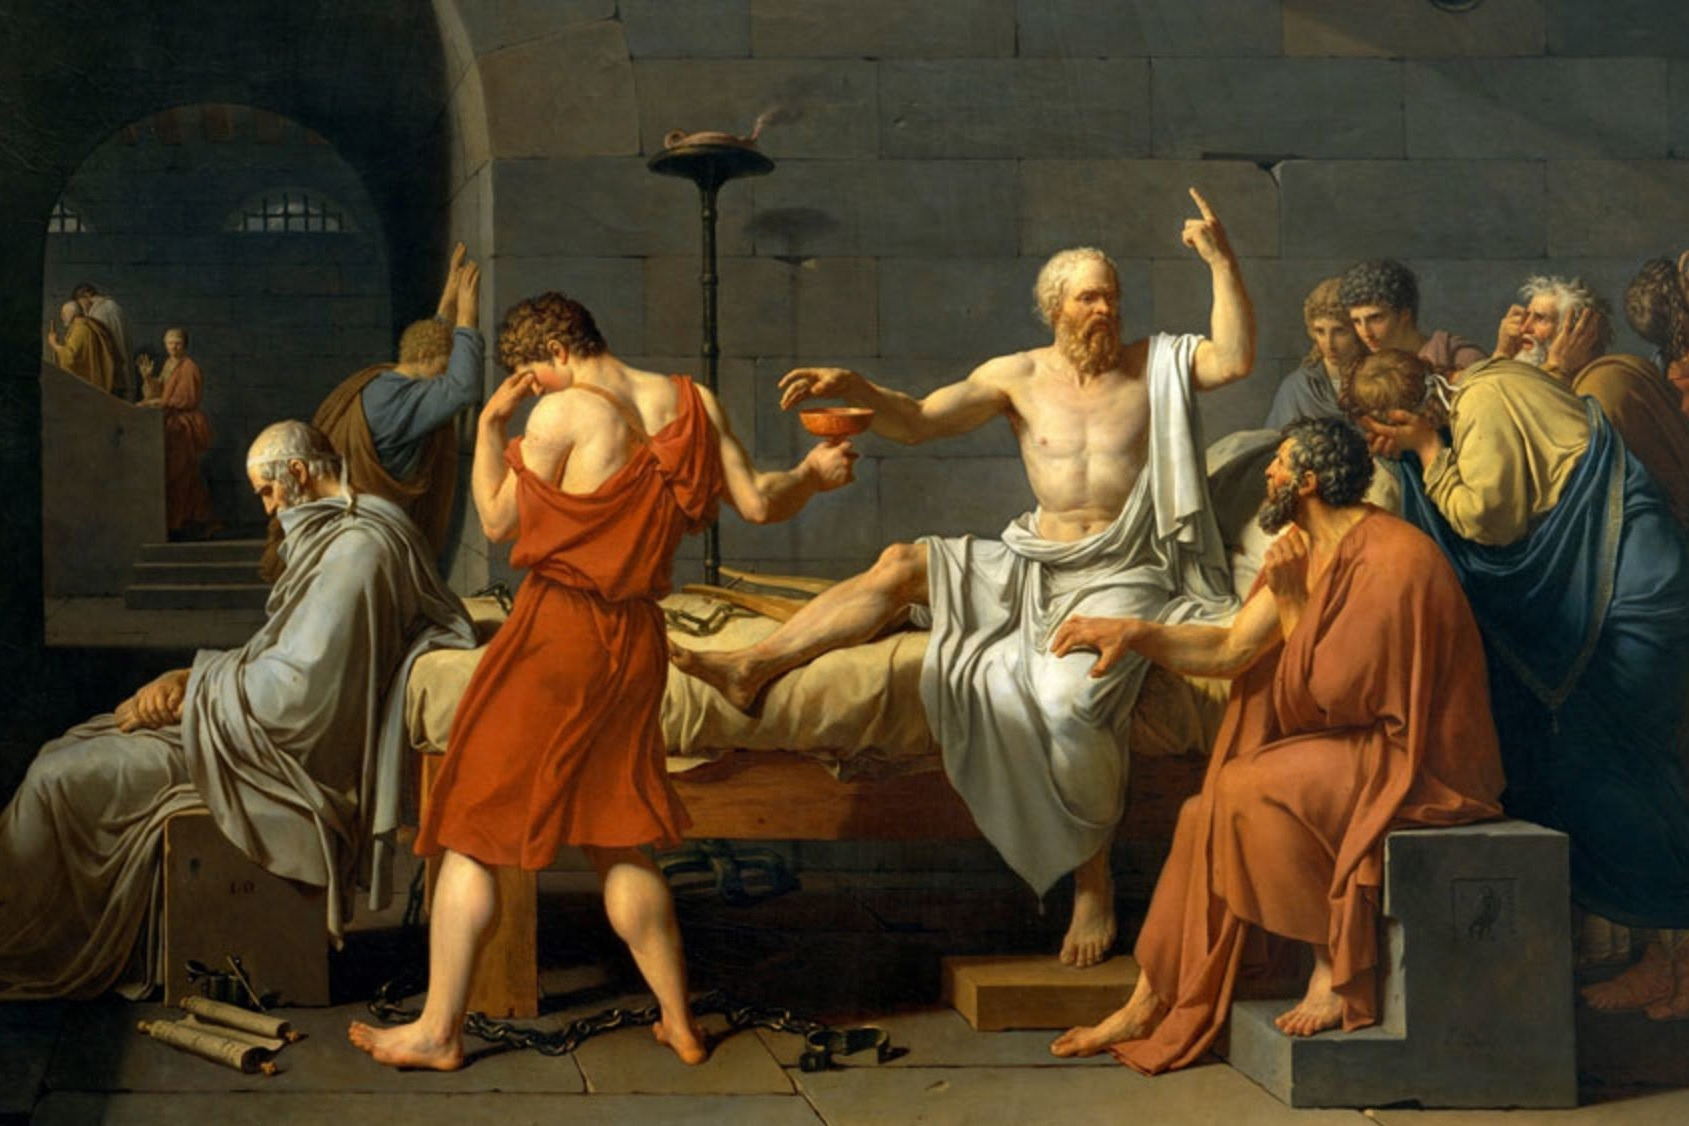 Philosophy 101 - Introduction to PhilosophyJoin class code: 278q6a